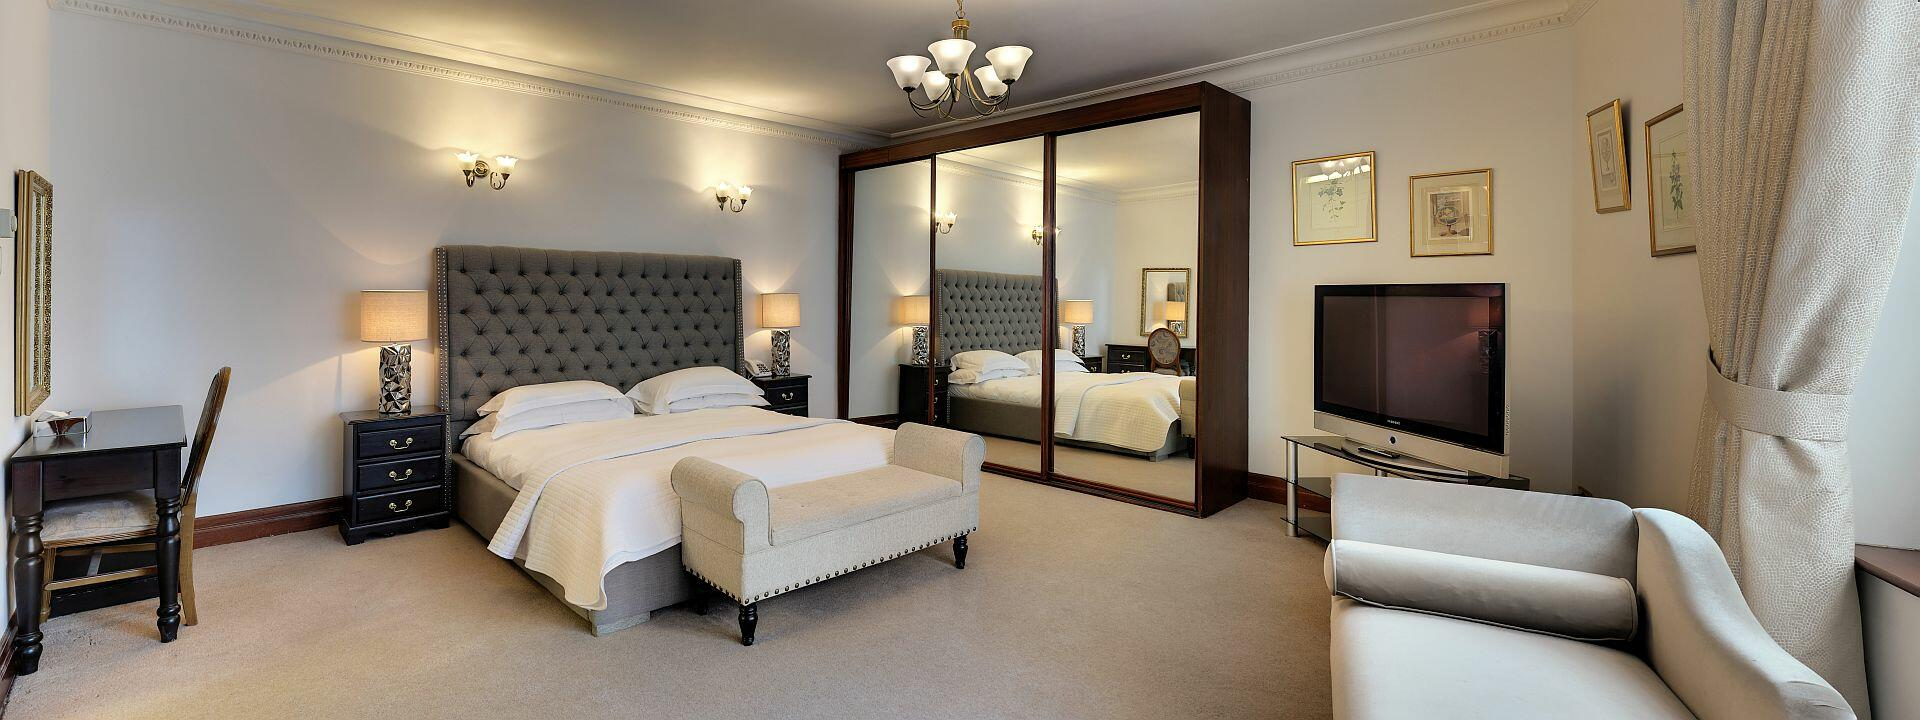 WELCOME TO CARLTON COURT London`s most luxurious 5 star boutique serviced apartments located in the heart of Mayfair